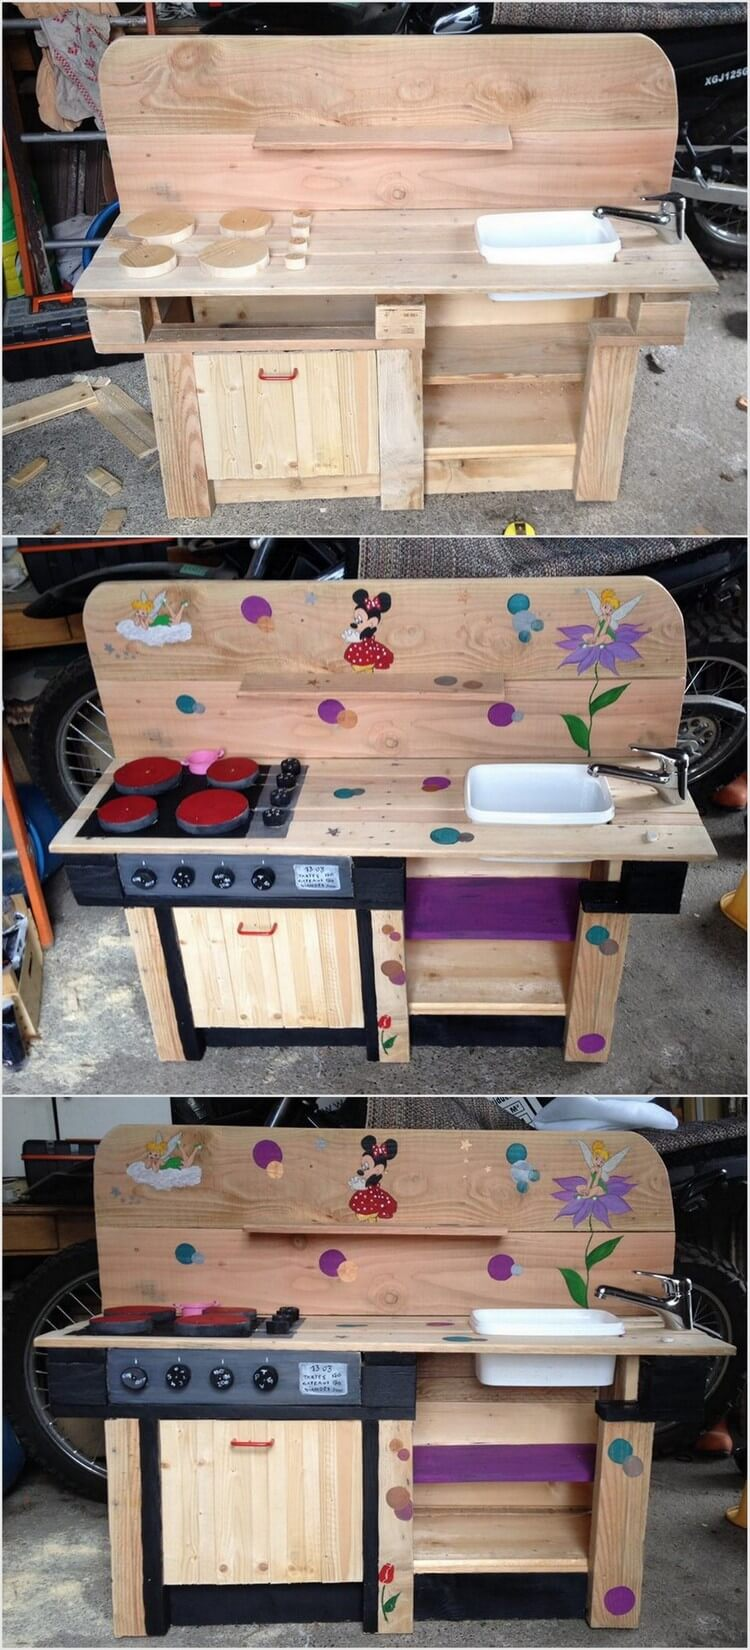 Some Fascinating DIY Projects With Old Wood Pallets